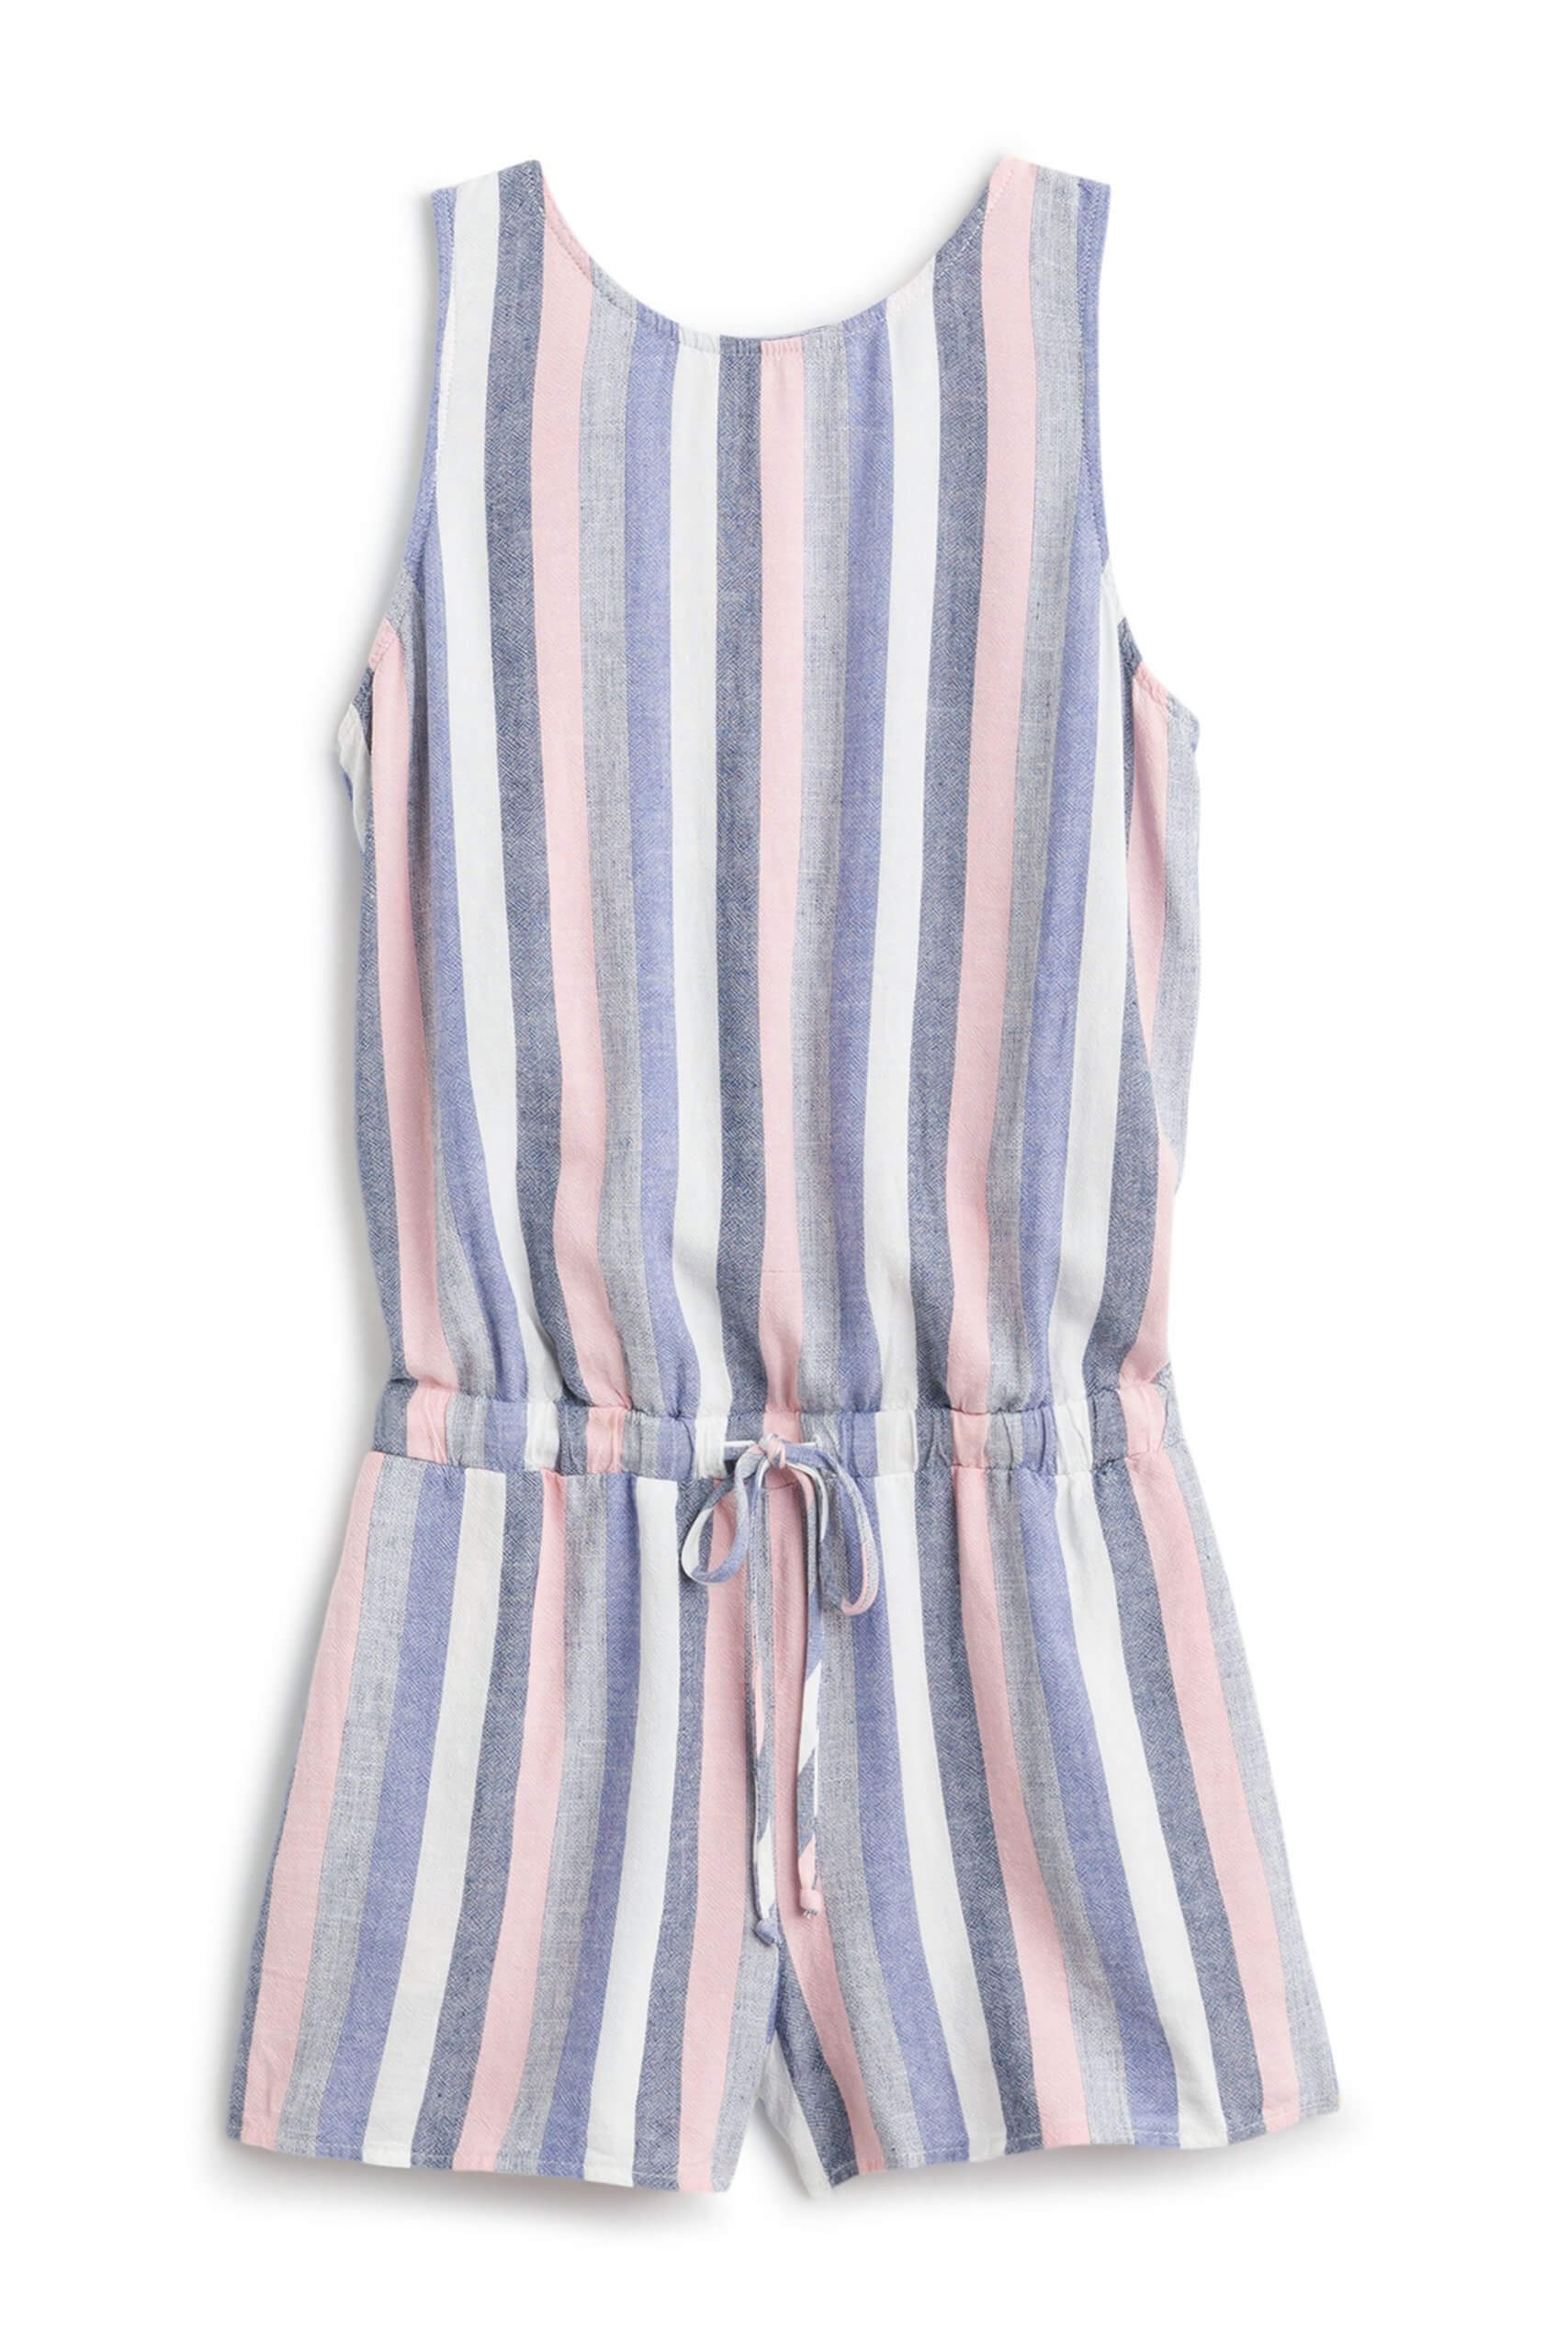 Stitch Fix Women's pink, blue and white striped romper with a drawstring waist.